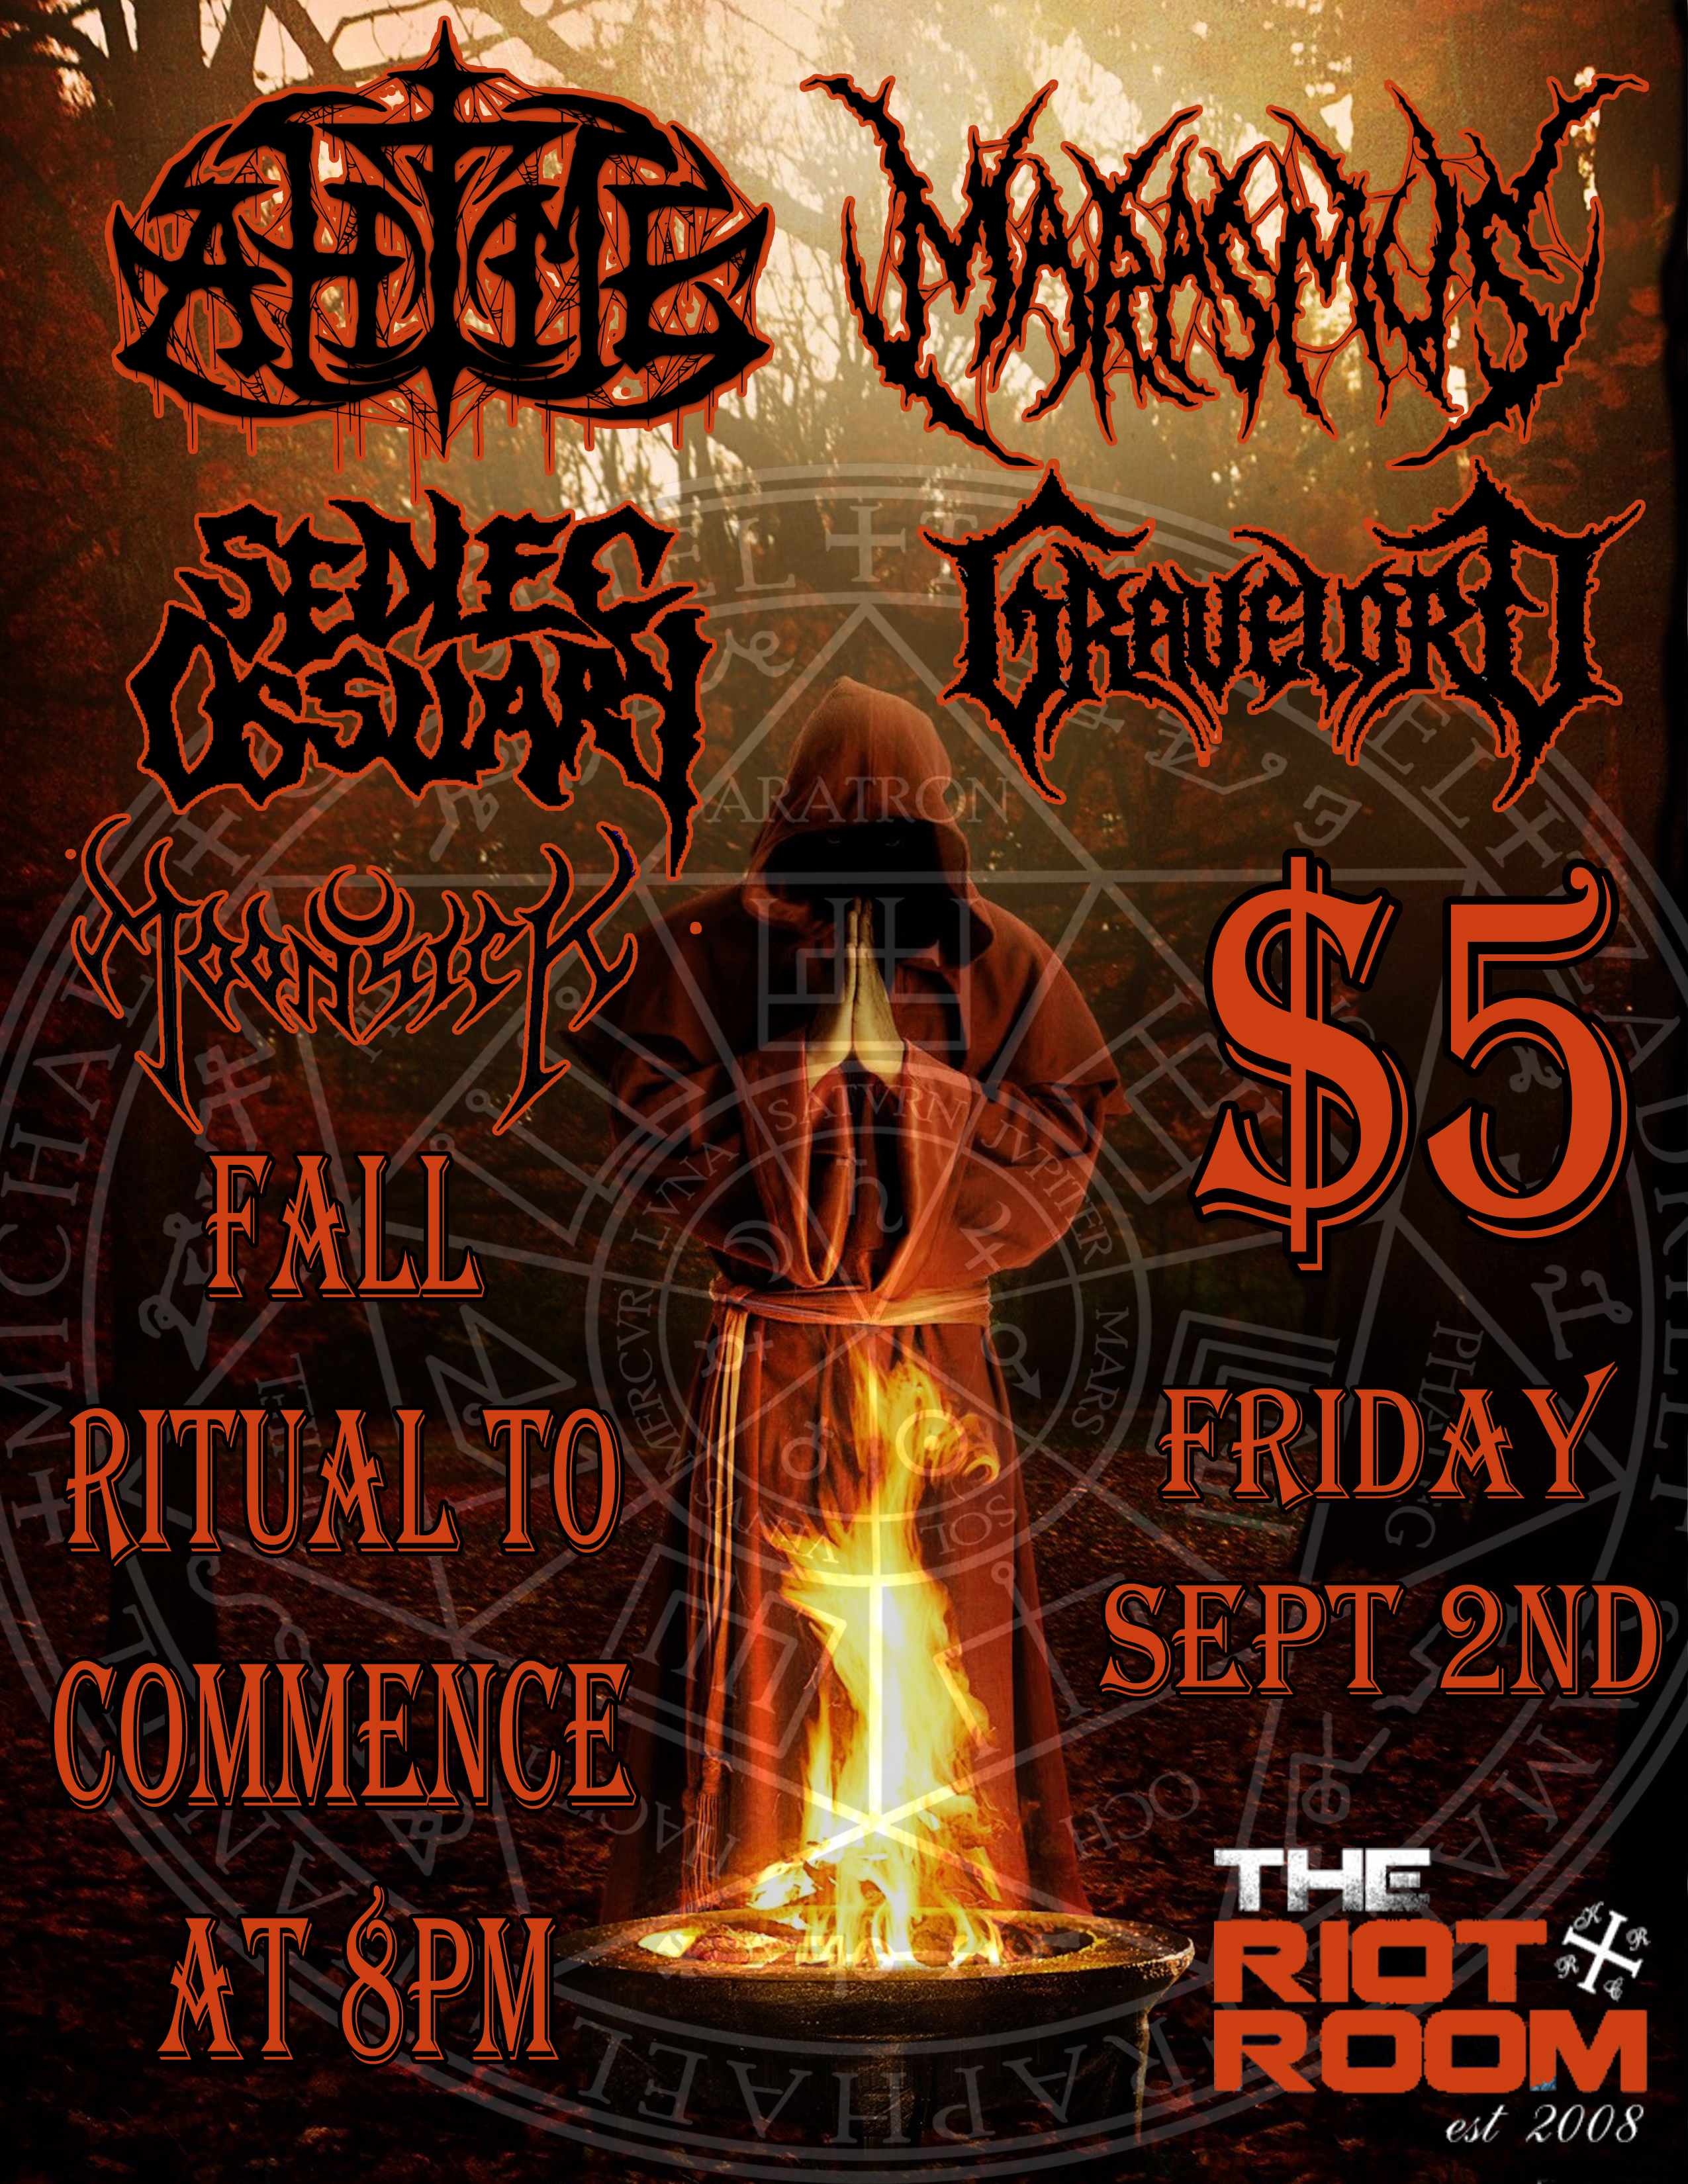 Sept 2nd @ The Riot Room